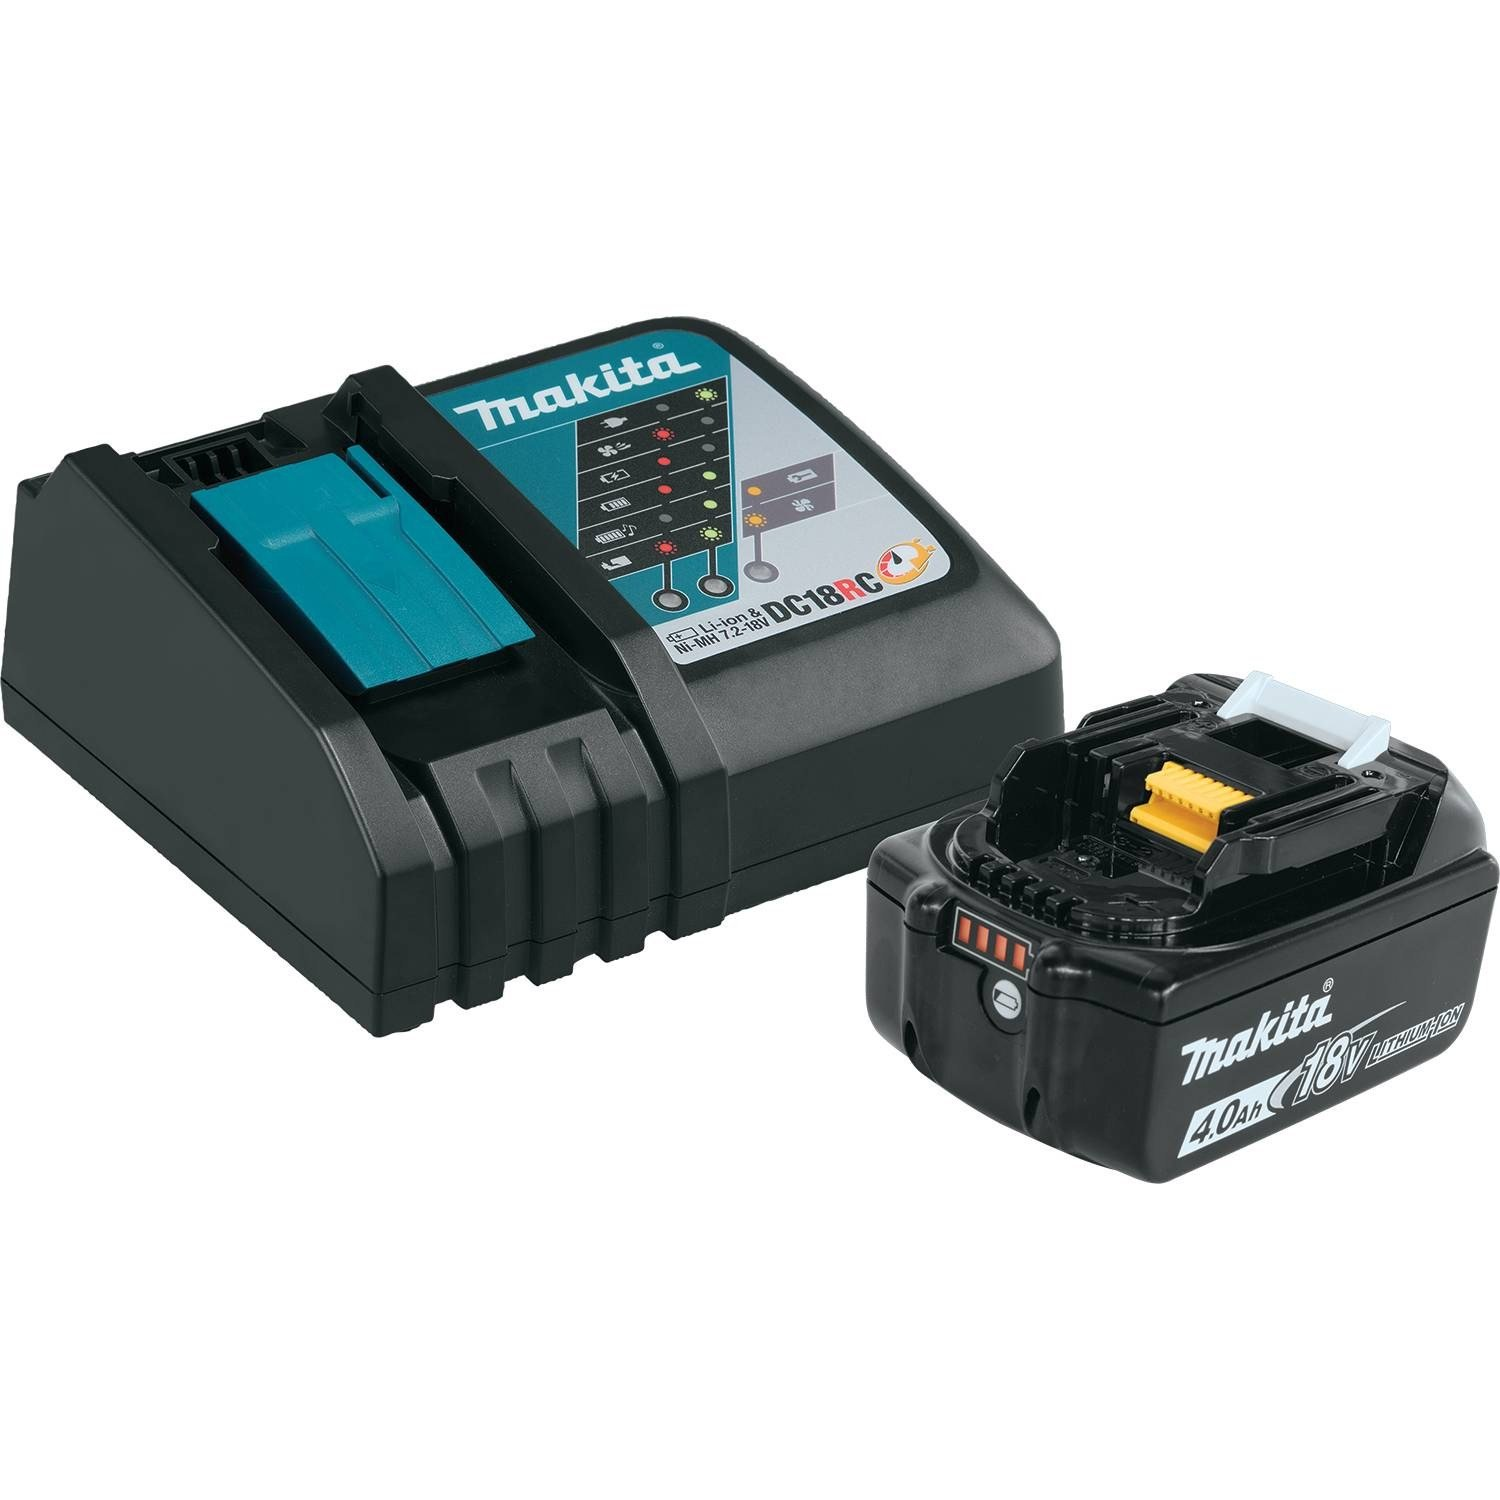 Makita BL1840BDC1LXT Lithium-Ion Battery and Charger Starter Pack, 18V